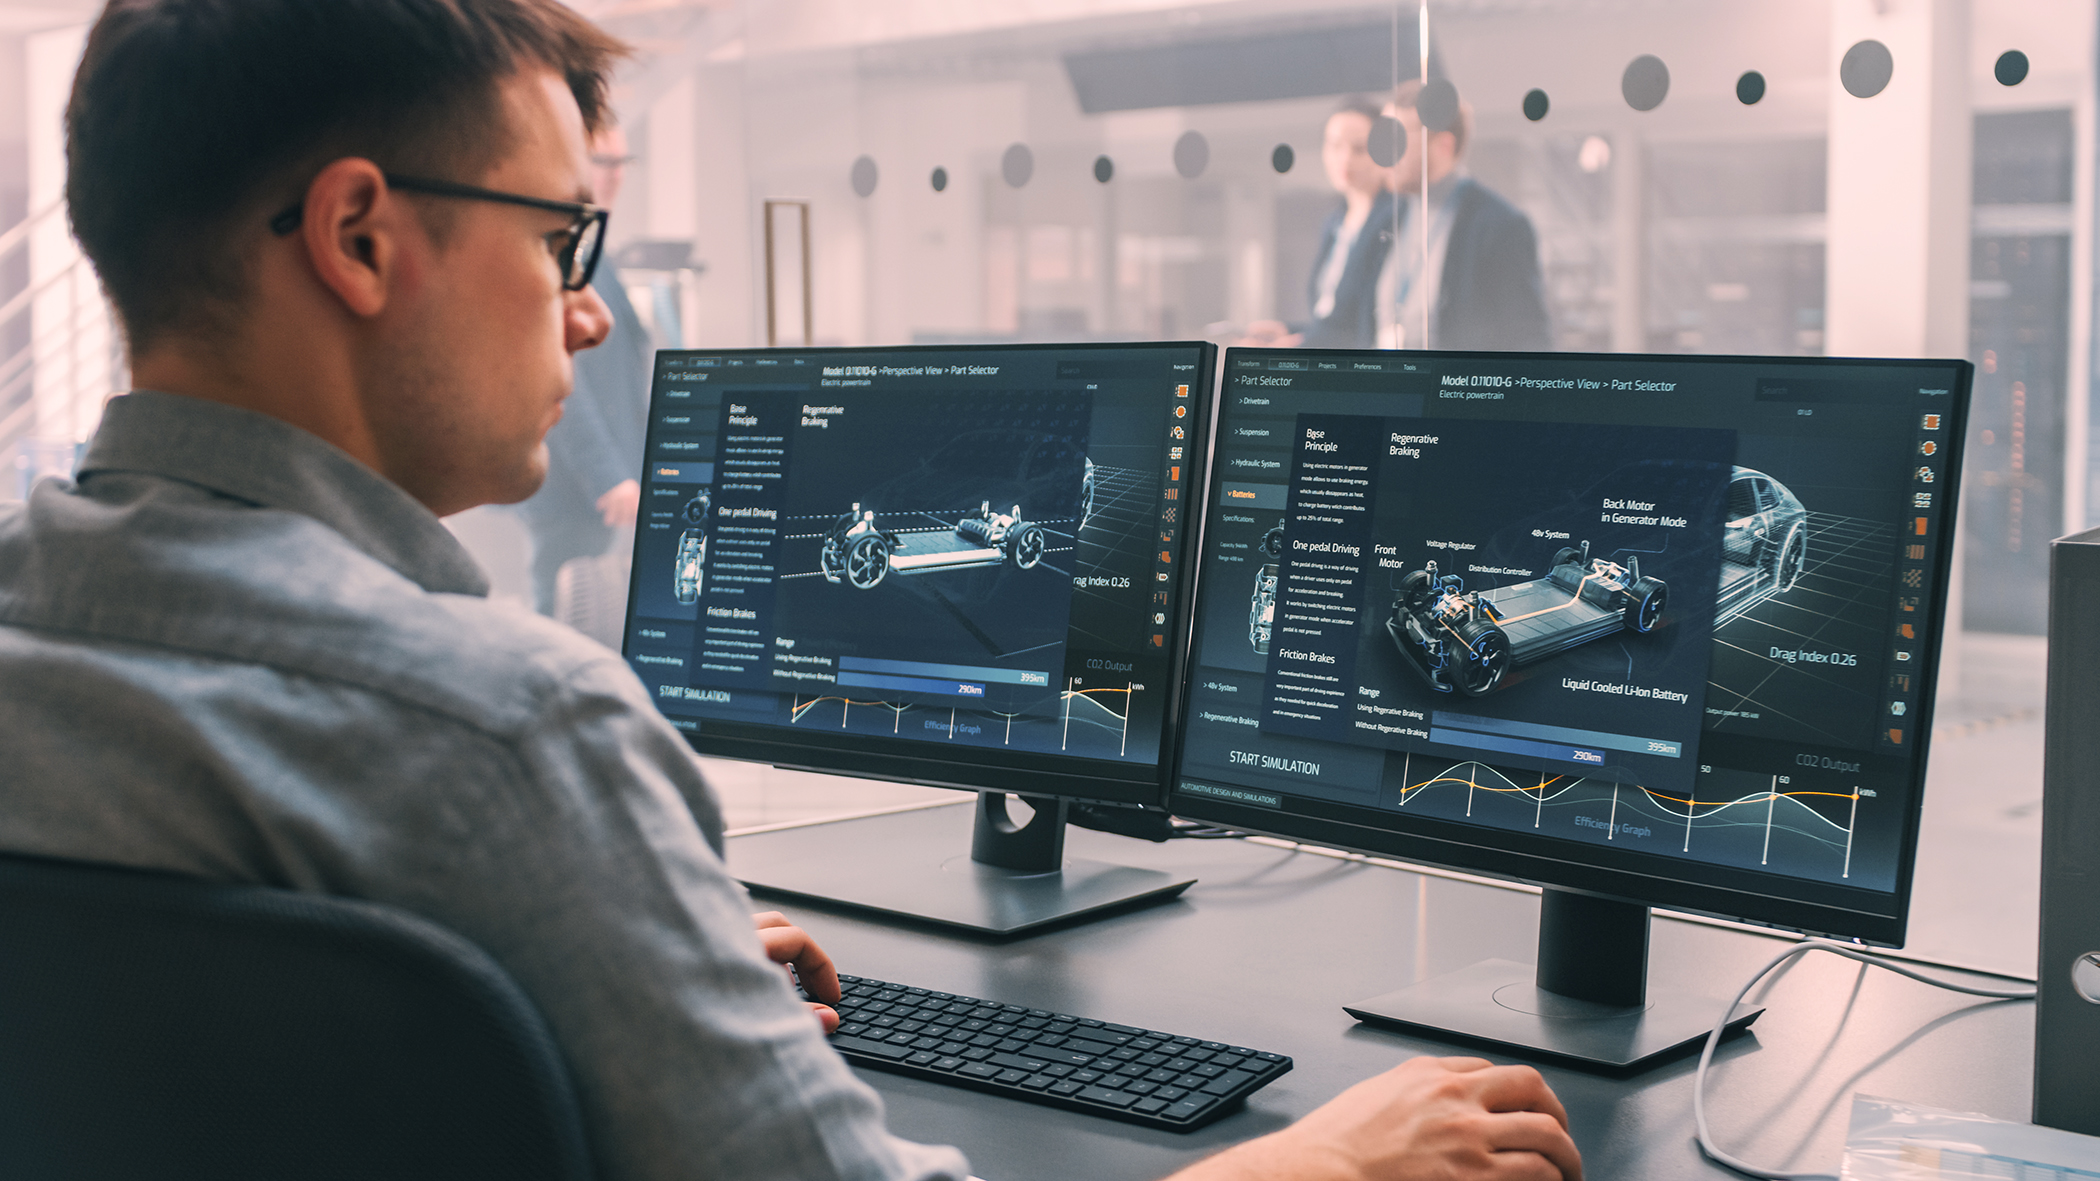 Software will play a key role in the cars of the future